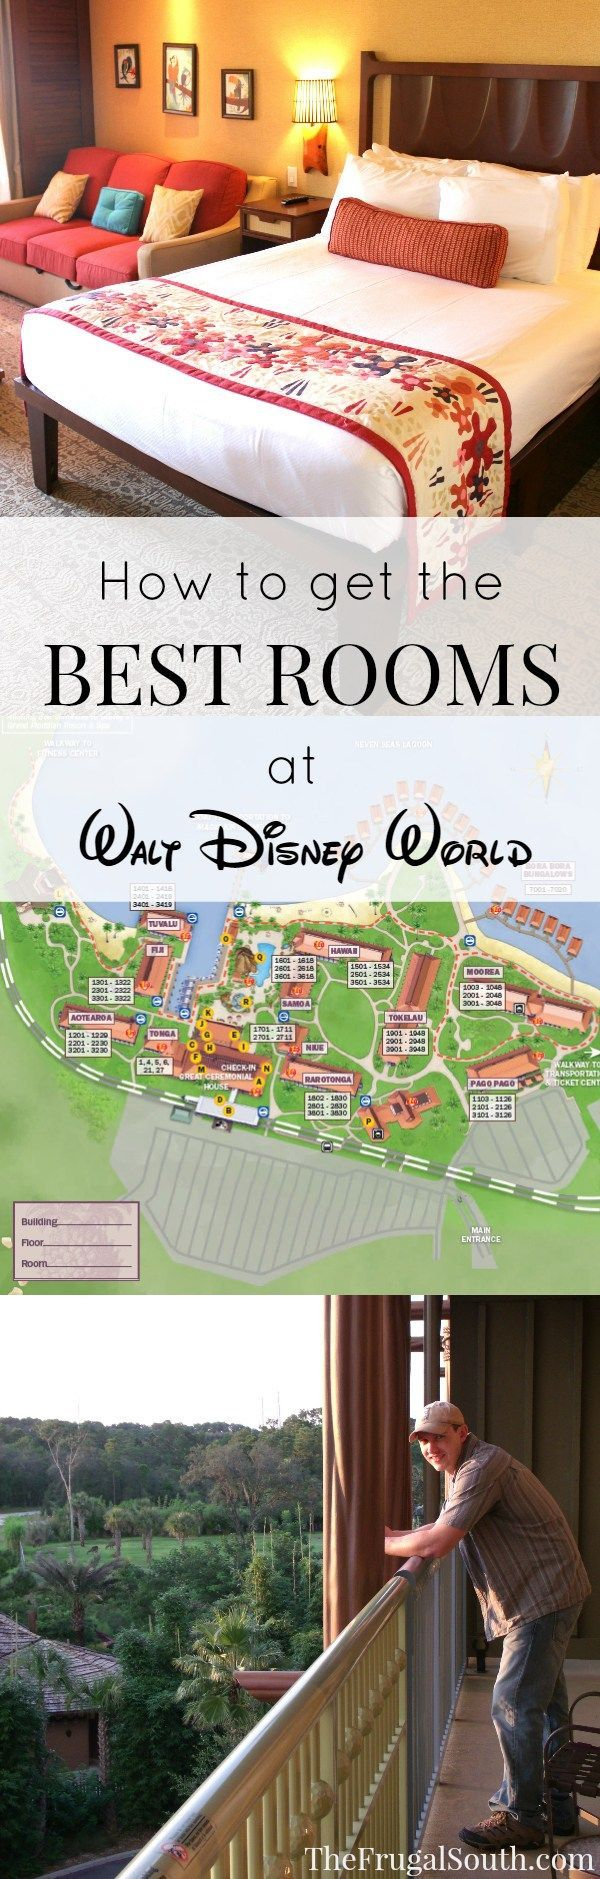 After MANY trips to Disney World over the years, I think I've finally mastered the art of getting the best rooms at Disney resort hotels! Resorts at Disney